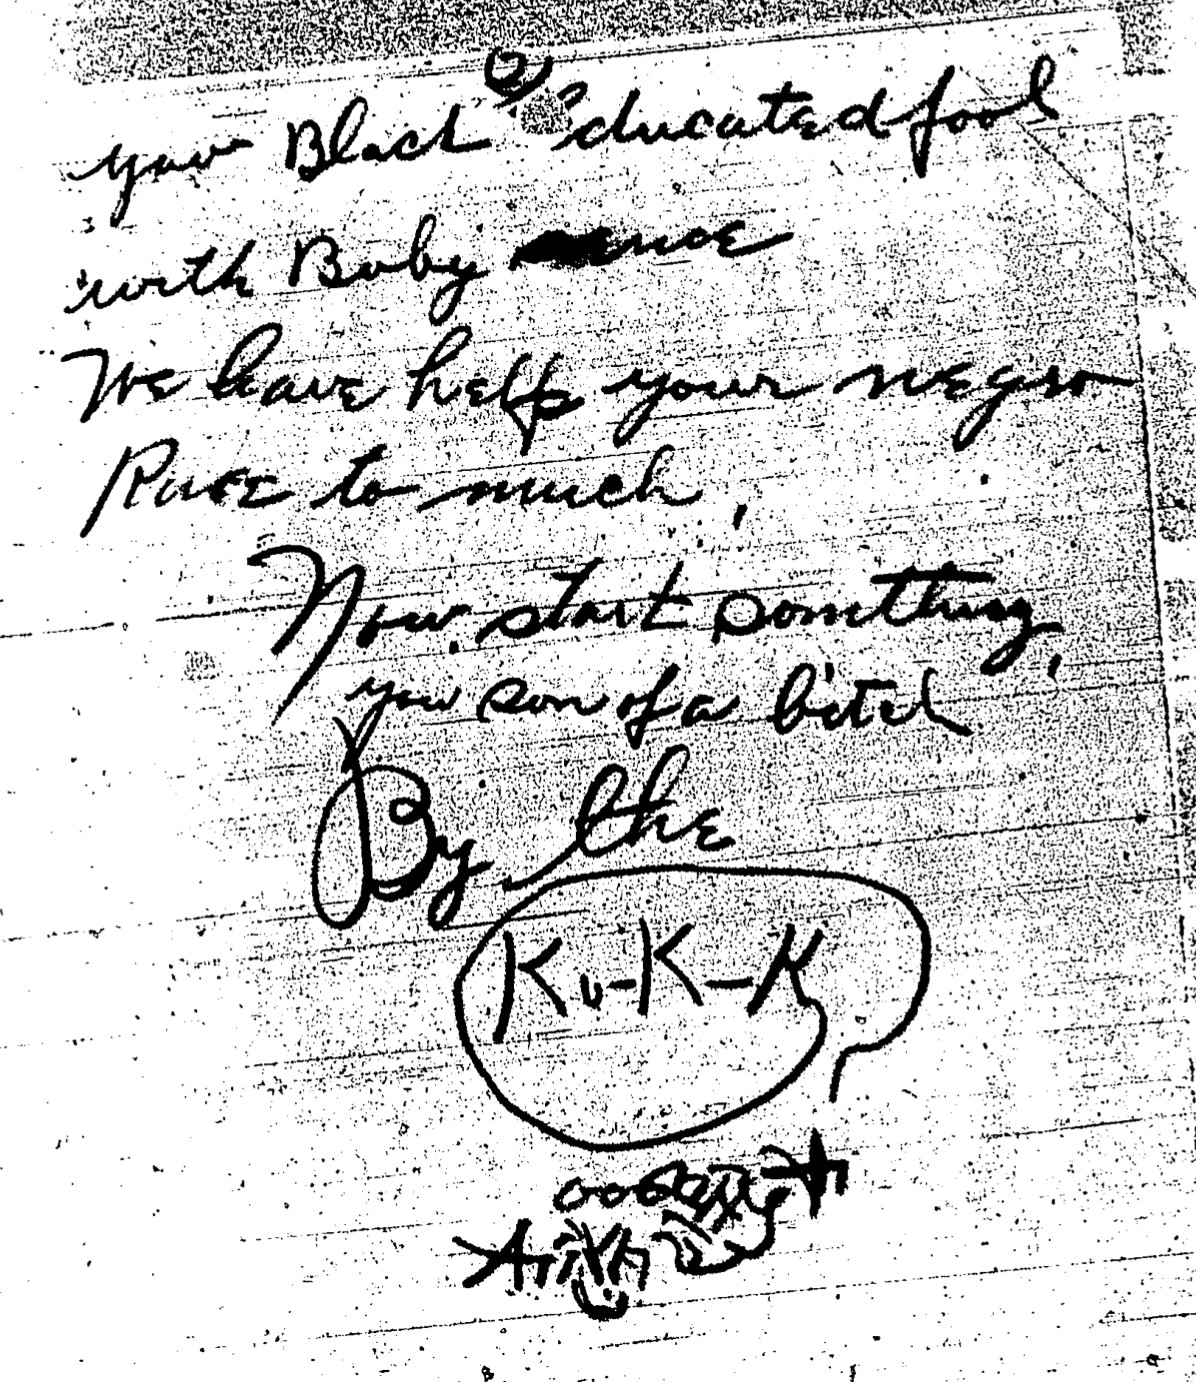 """Threatening letter sent to U.S. Rep. Oscar De Priest, purportedly by the """"K.K.K."""""""